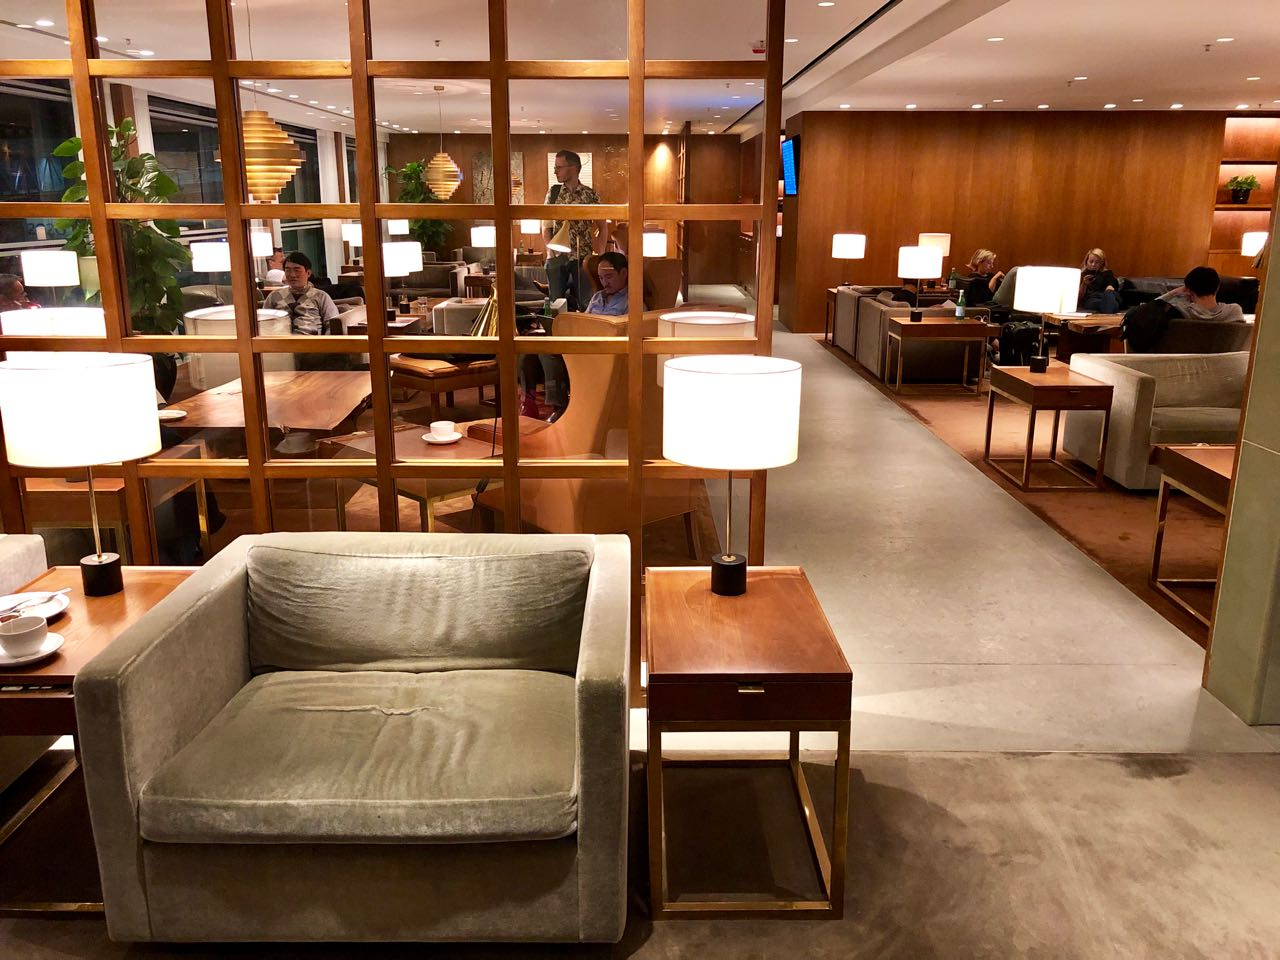 Cathay Pacific The Pier First Class Lounge lounge